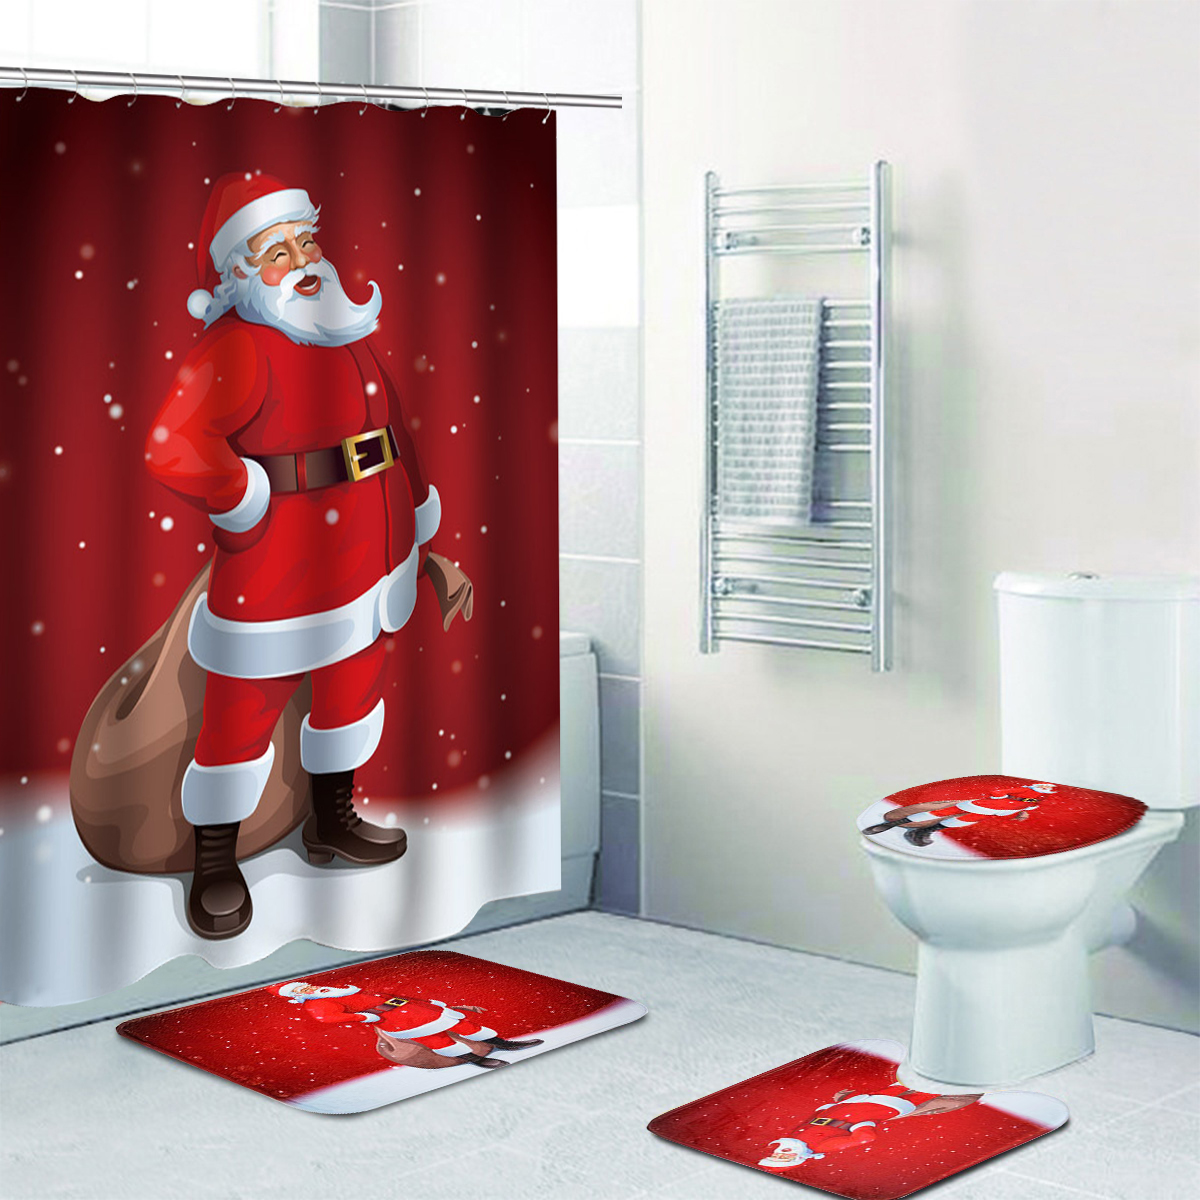 Merry Christmas Decor Toilet Seat Covers Sets For Home Santa Claus Pattern Waterproof Bathroom Decor